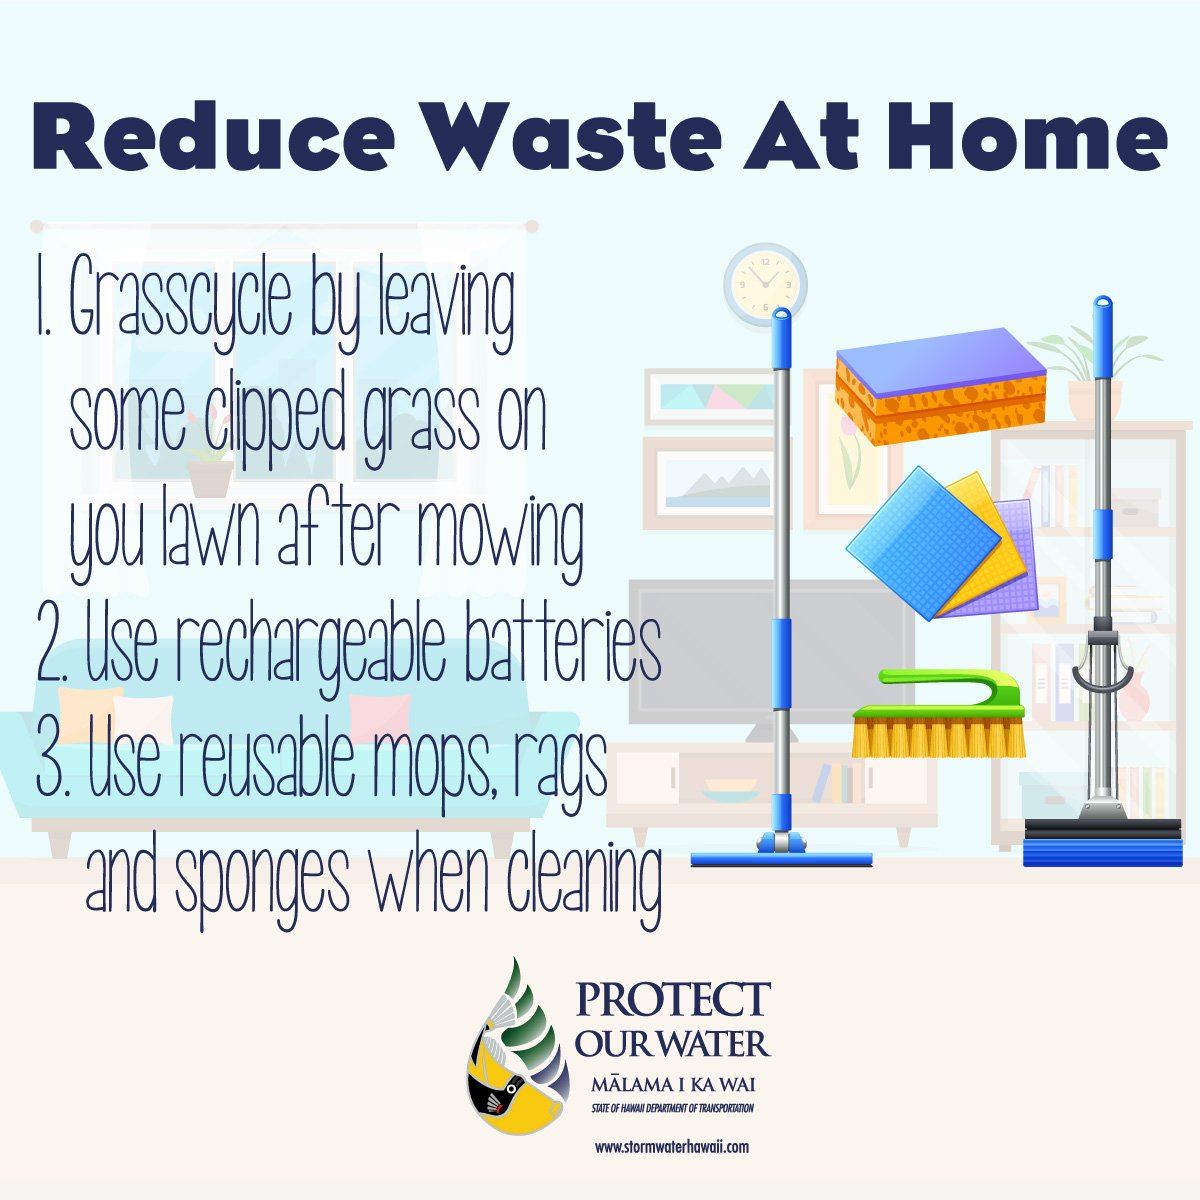 Trash reduction can start at home! Reduce the amount of waste at home with these three easy steps. #trashreduction #reduce #reuse #recycle #hometrashreduction #homewaste #TrashFreeHawaii #protectourwater #StormWaterHawaiipic.twitter.com/DYEhPeqSxj